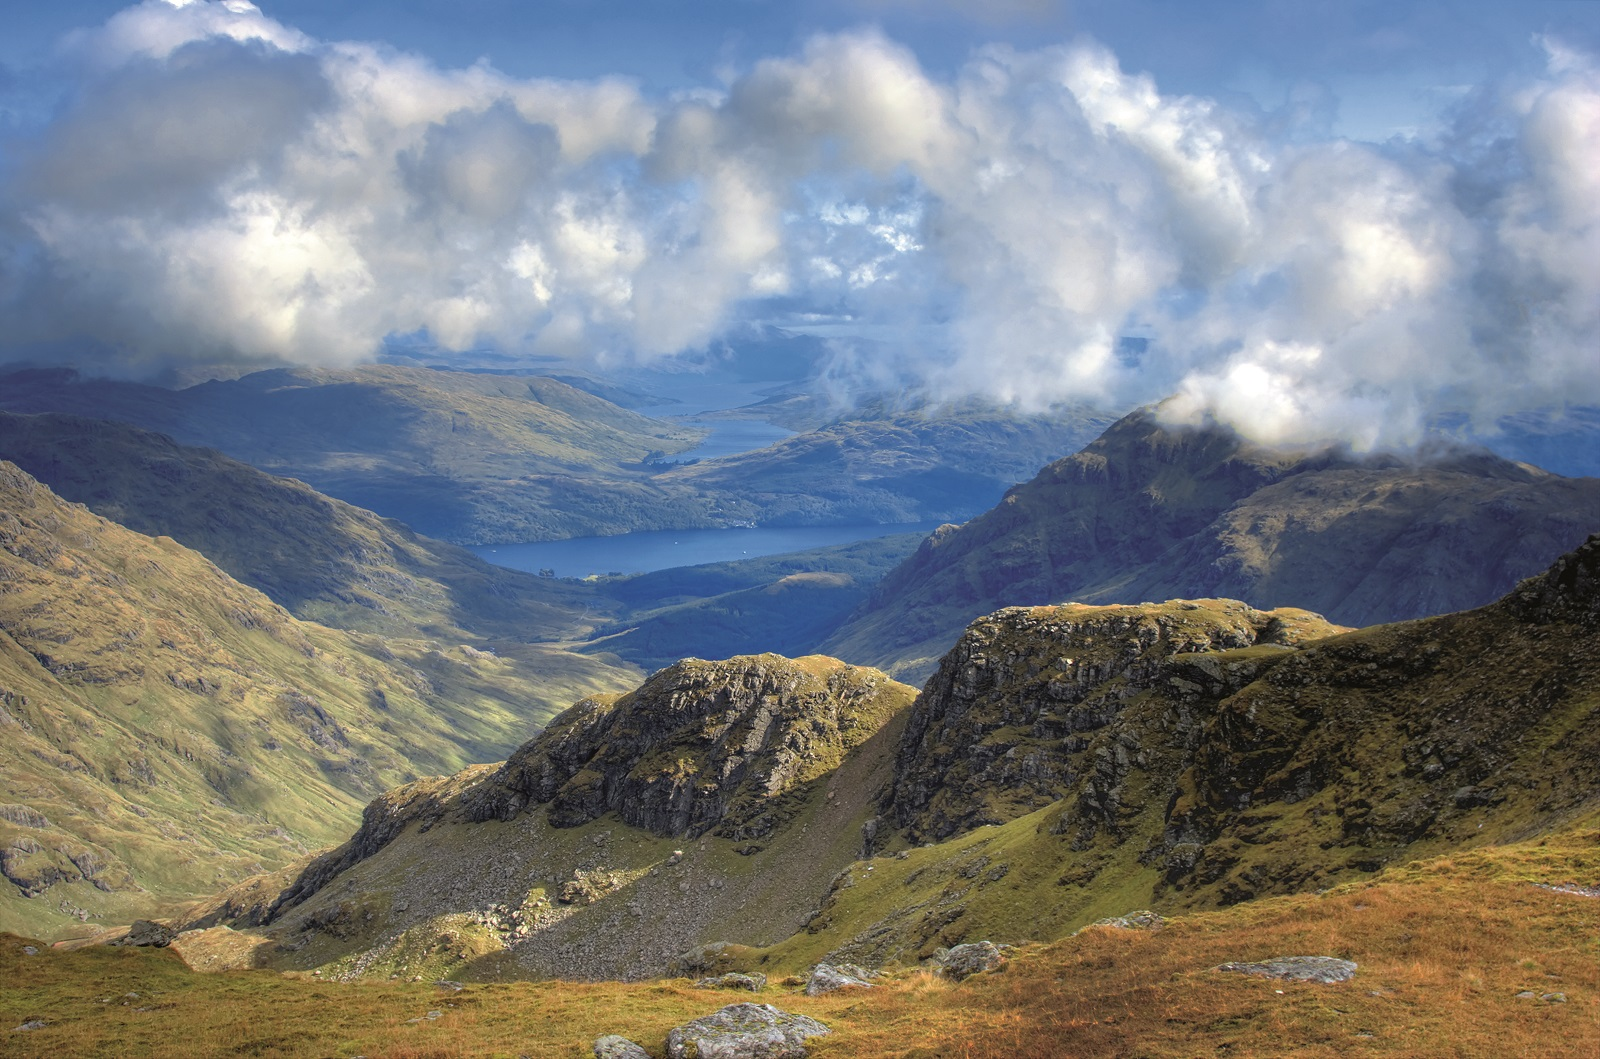 Looking from the summit of Ben Ime down through the clouds to Loch Lomond, Loch Arklet and Loch Katrine.